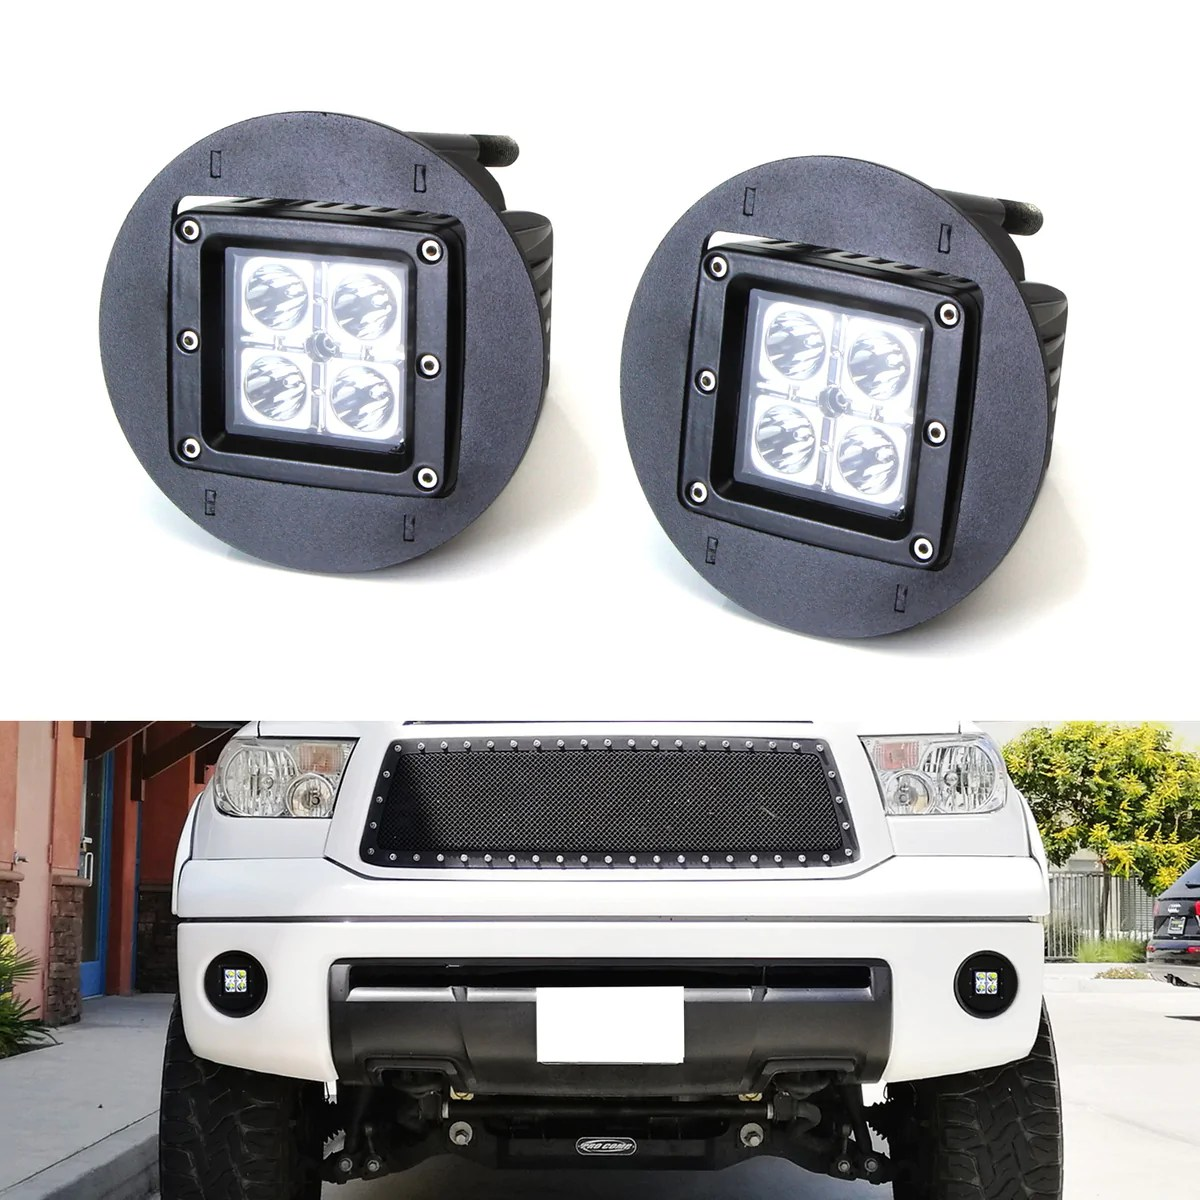 hight resolution of led pod light fog lamp kit for toyota tundra tacoma sequoia solara includes 2 20w high power cree led cubes foglight location mounting brackets